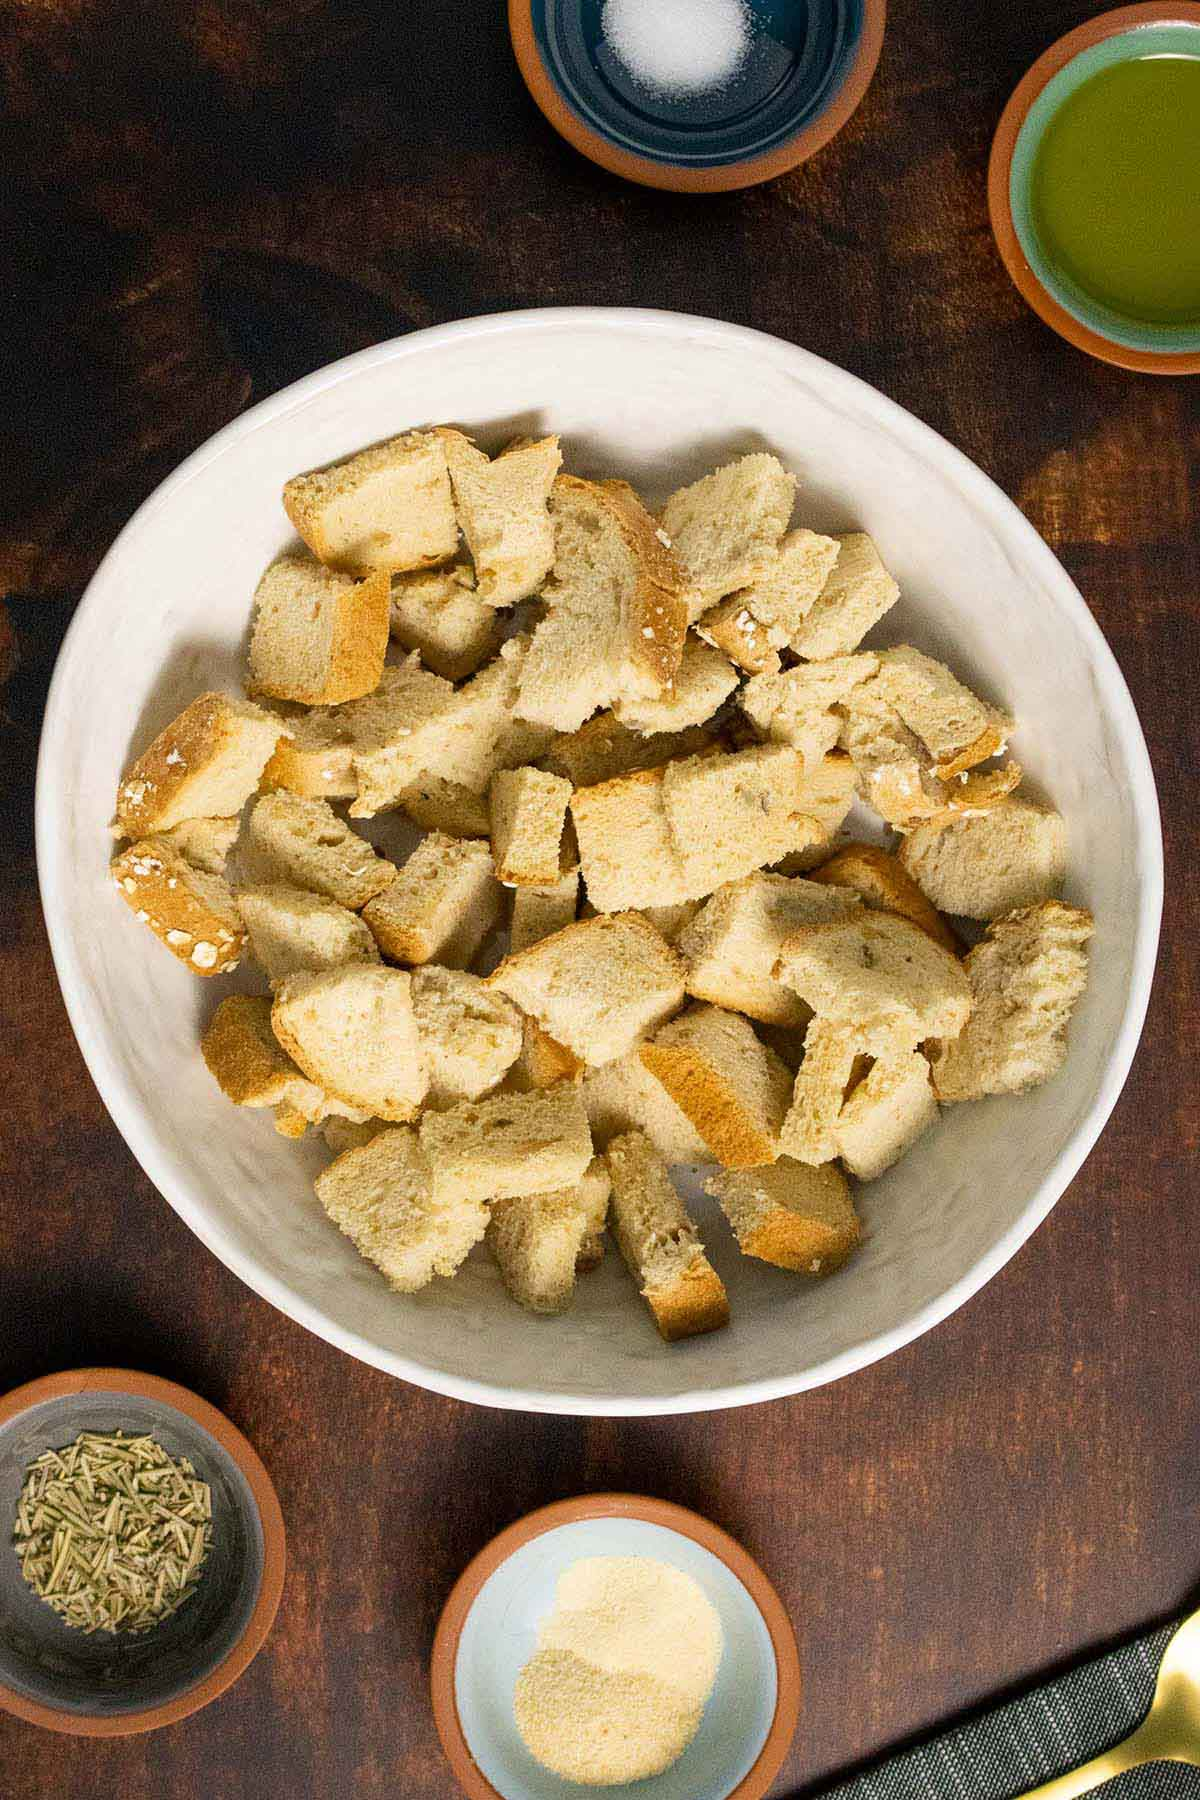 bread cubes and seasonings in bowls on a wood table